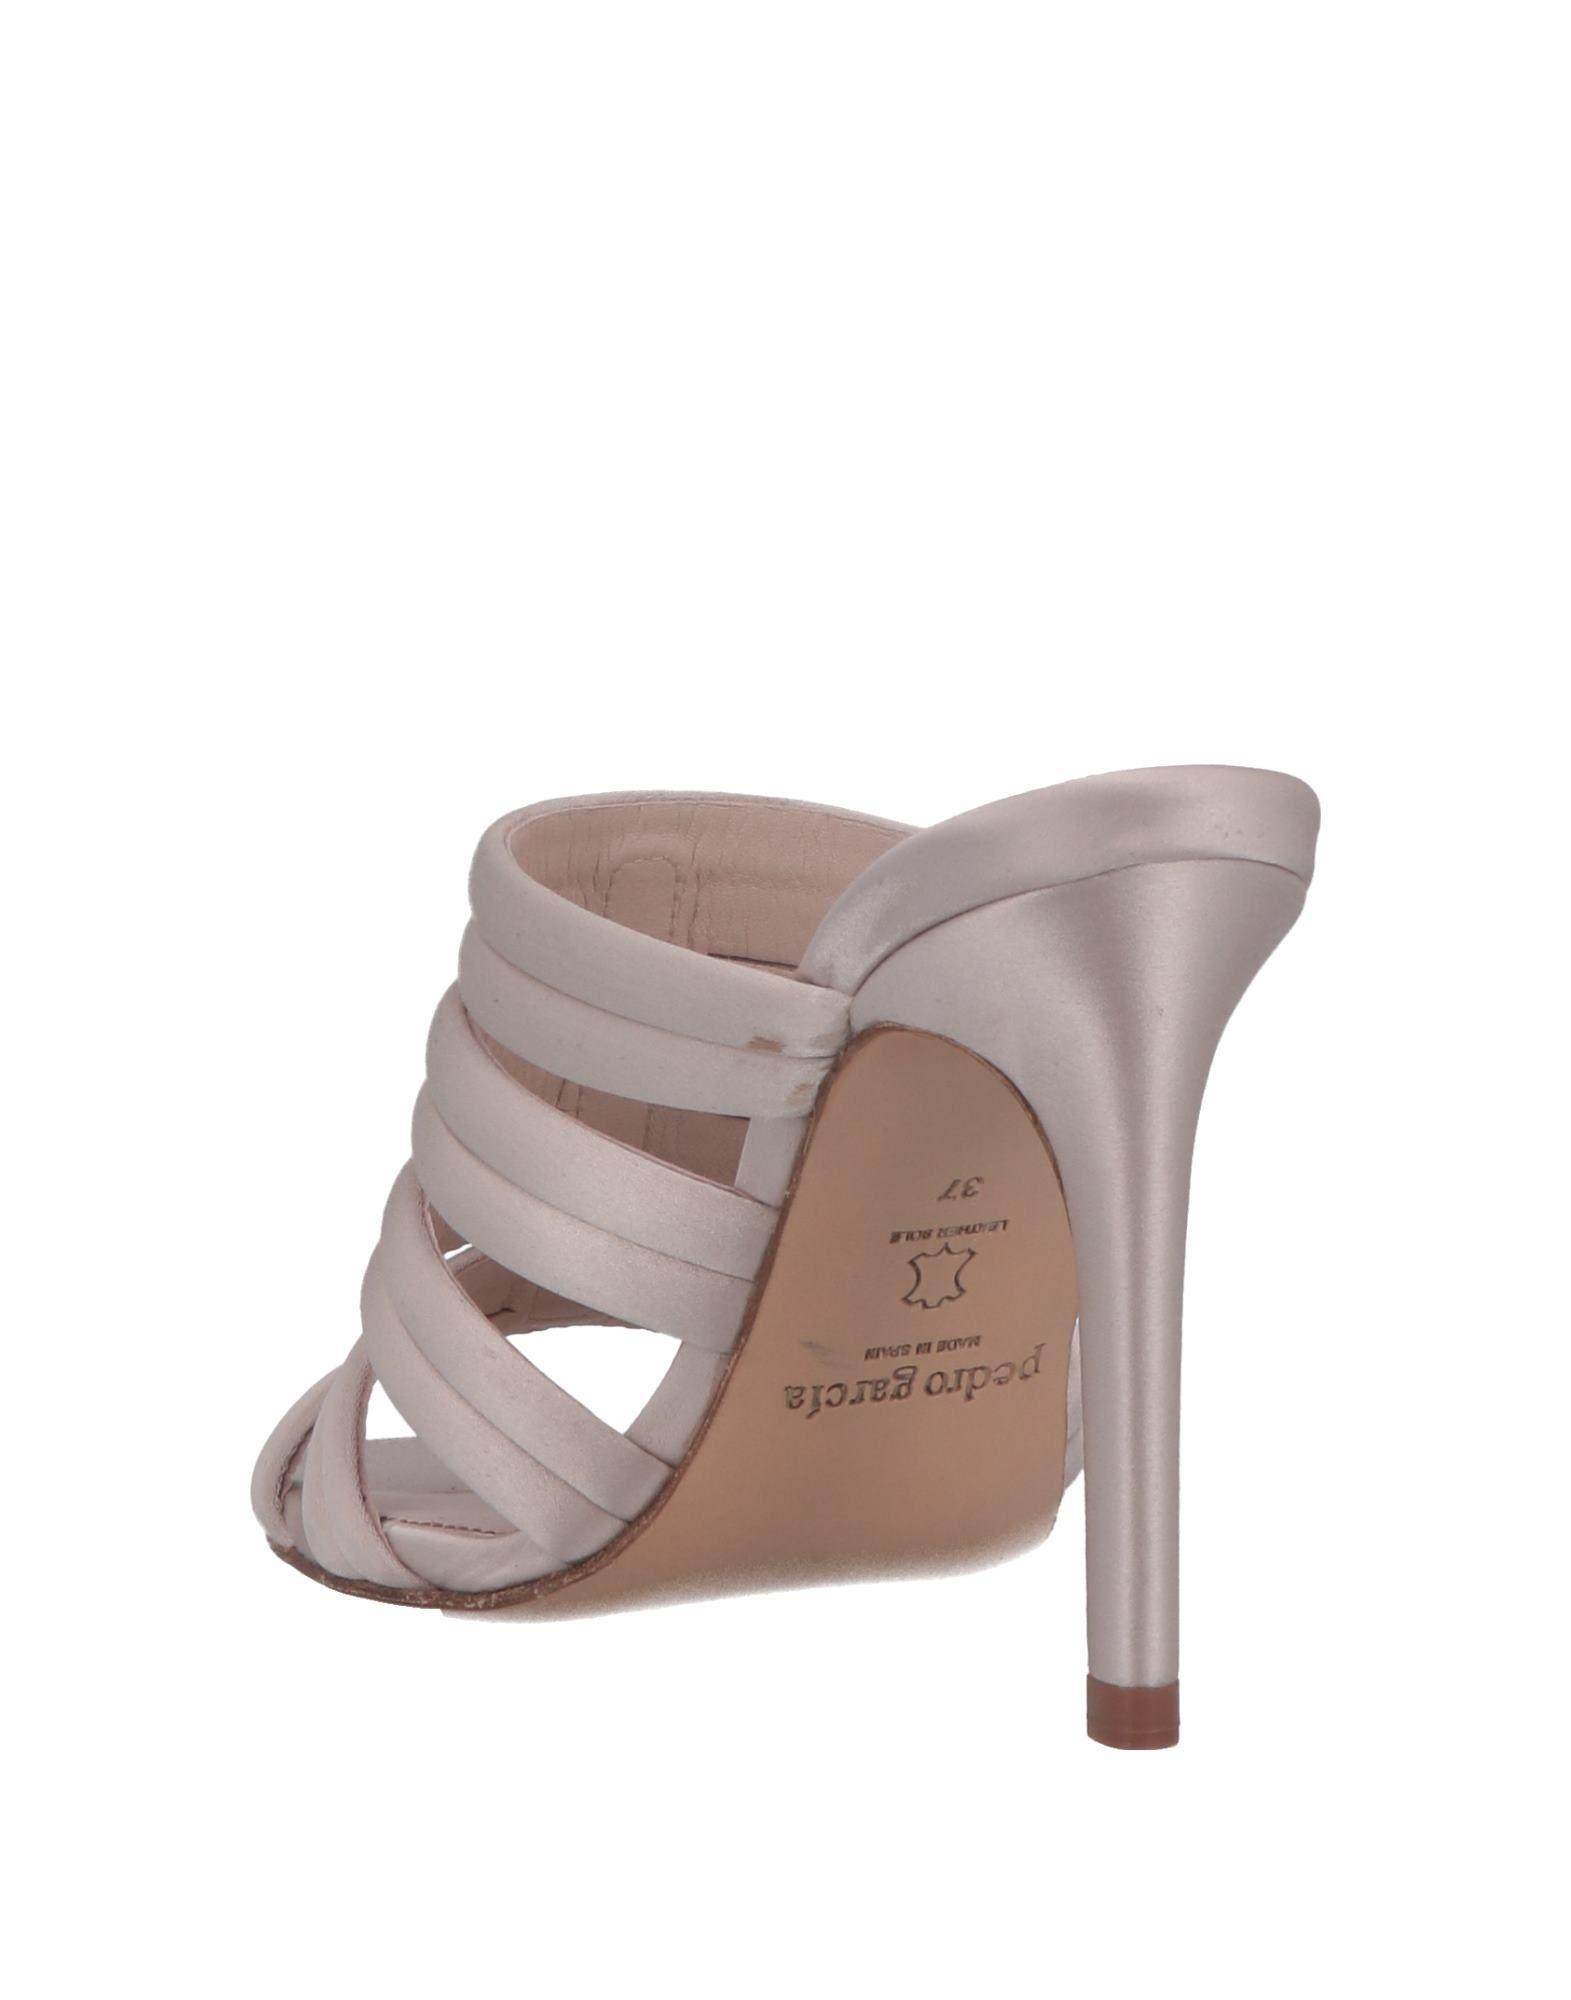 Lyst - Pedro Garcia Sandals in Natural 0fb96391089